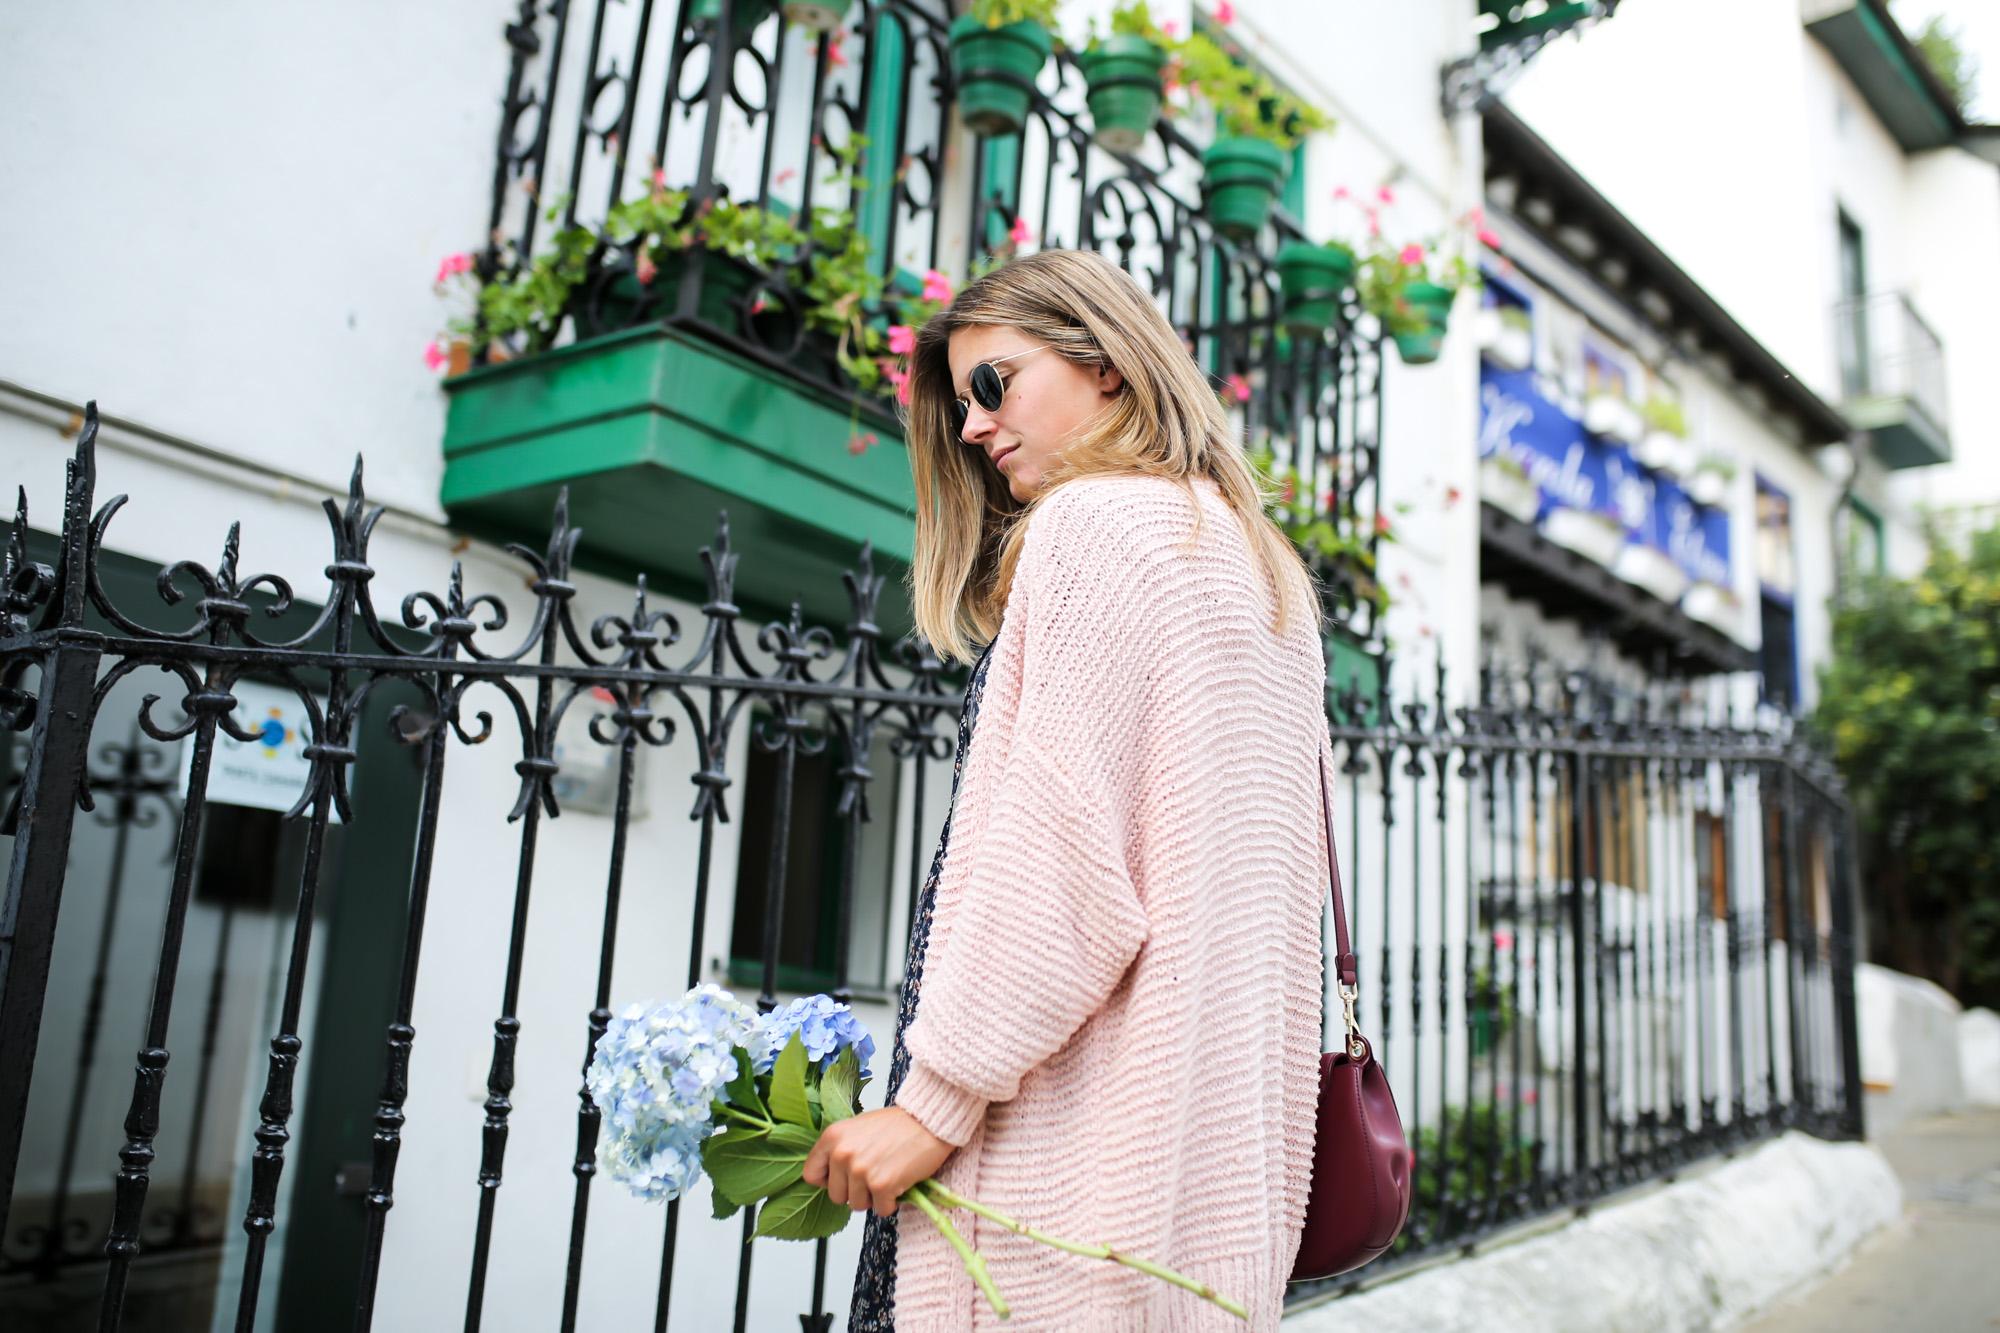 Clochet_streetstyle_fashionblogger_eseoese_flowerprintmididress_converse_americanvintage_pinkknit-2